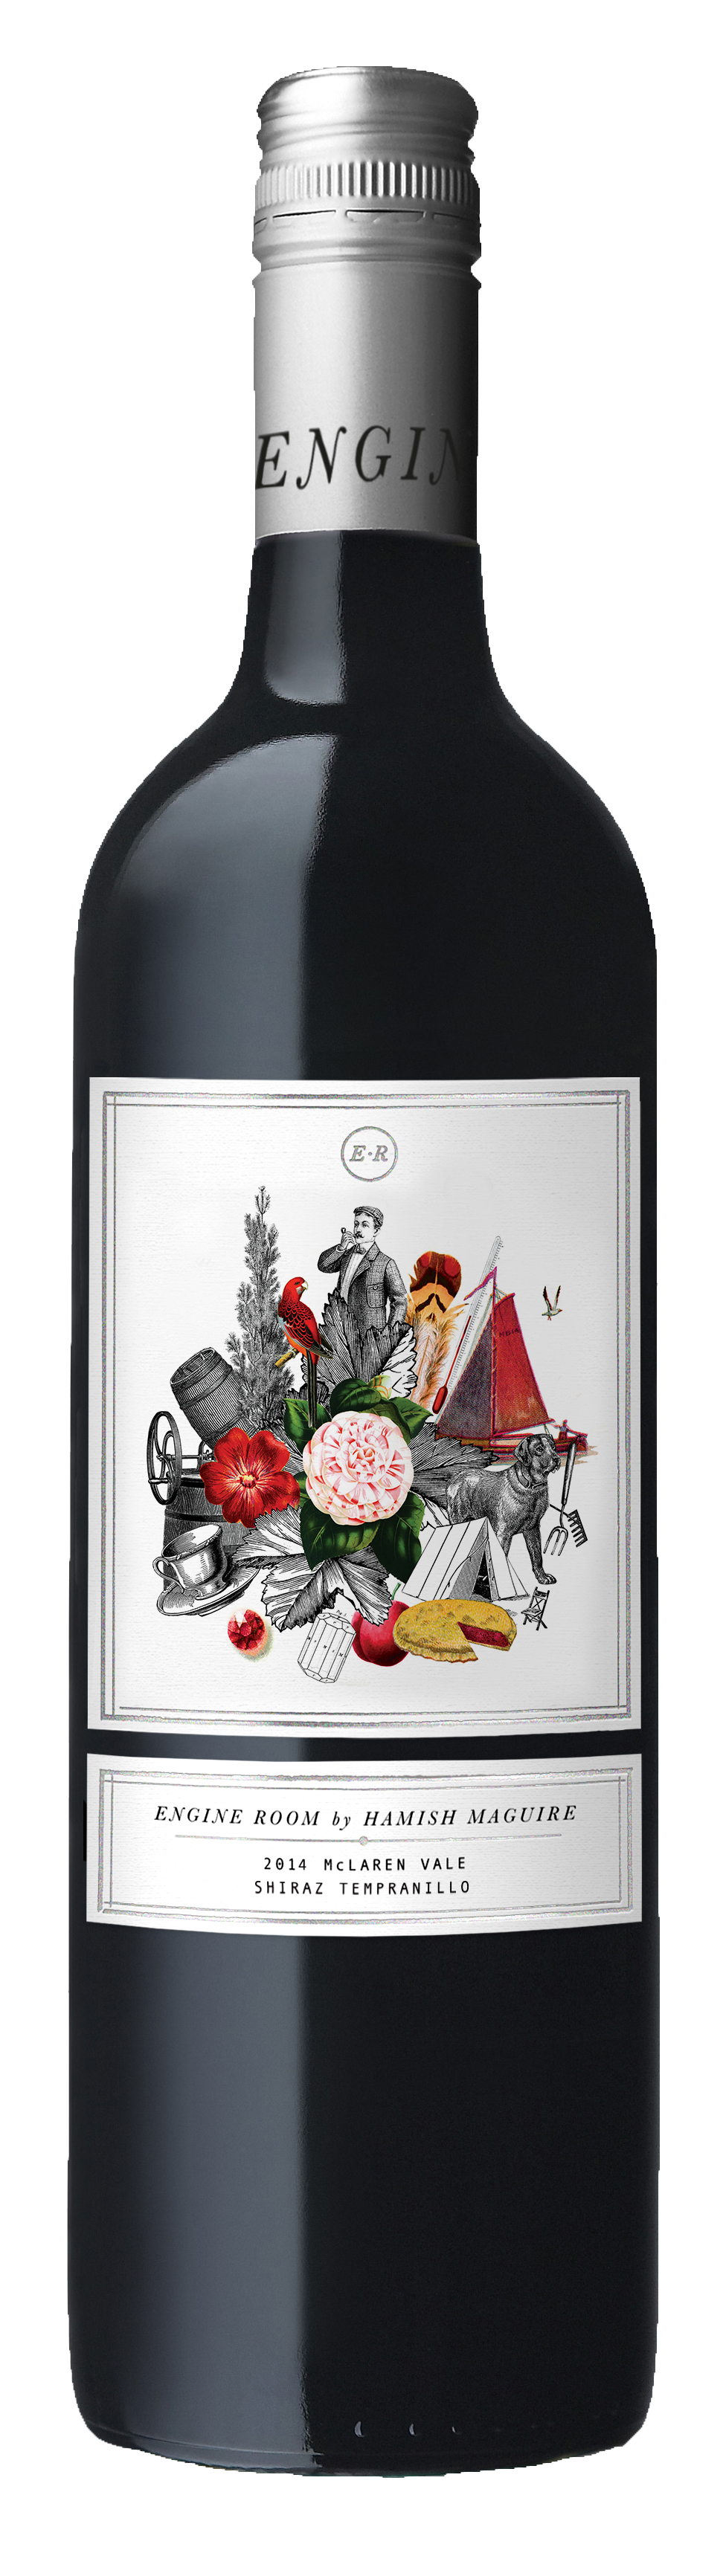 Engine Room SHIRAZ TEMPRANILLO 2018